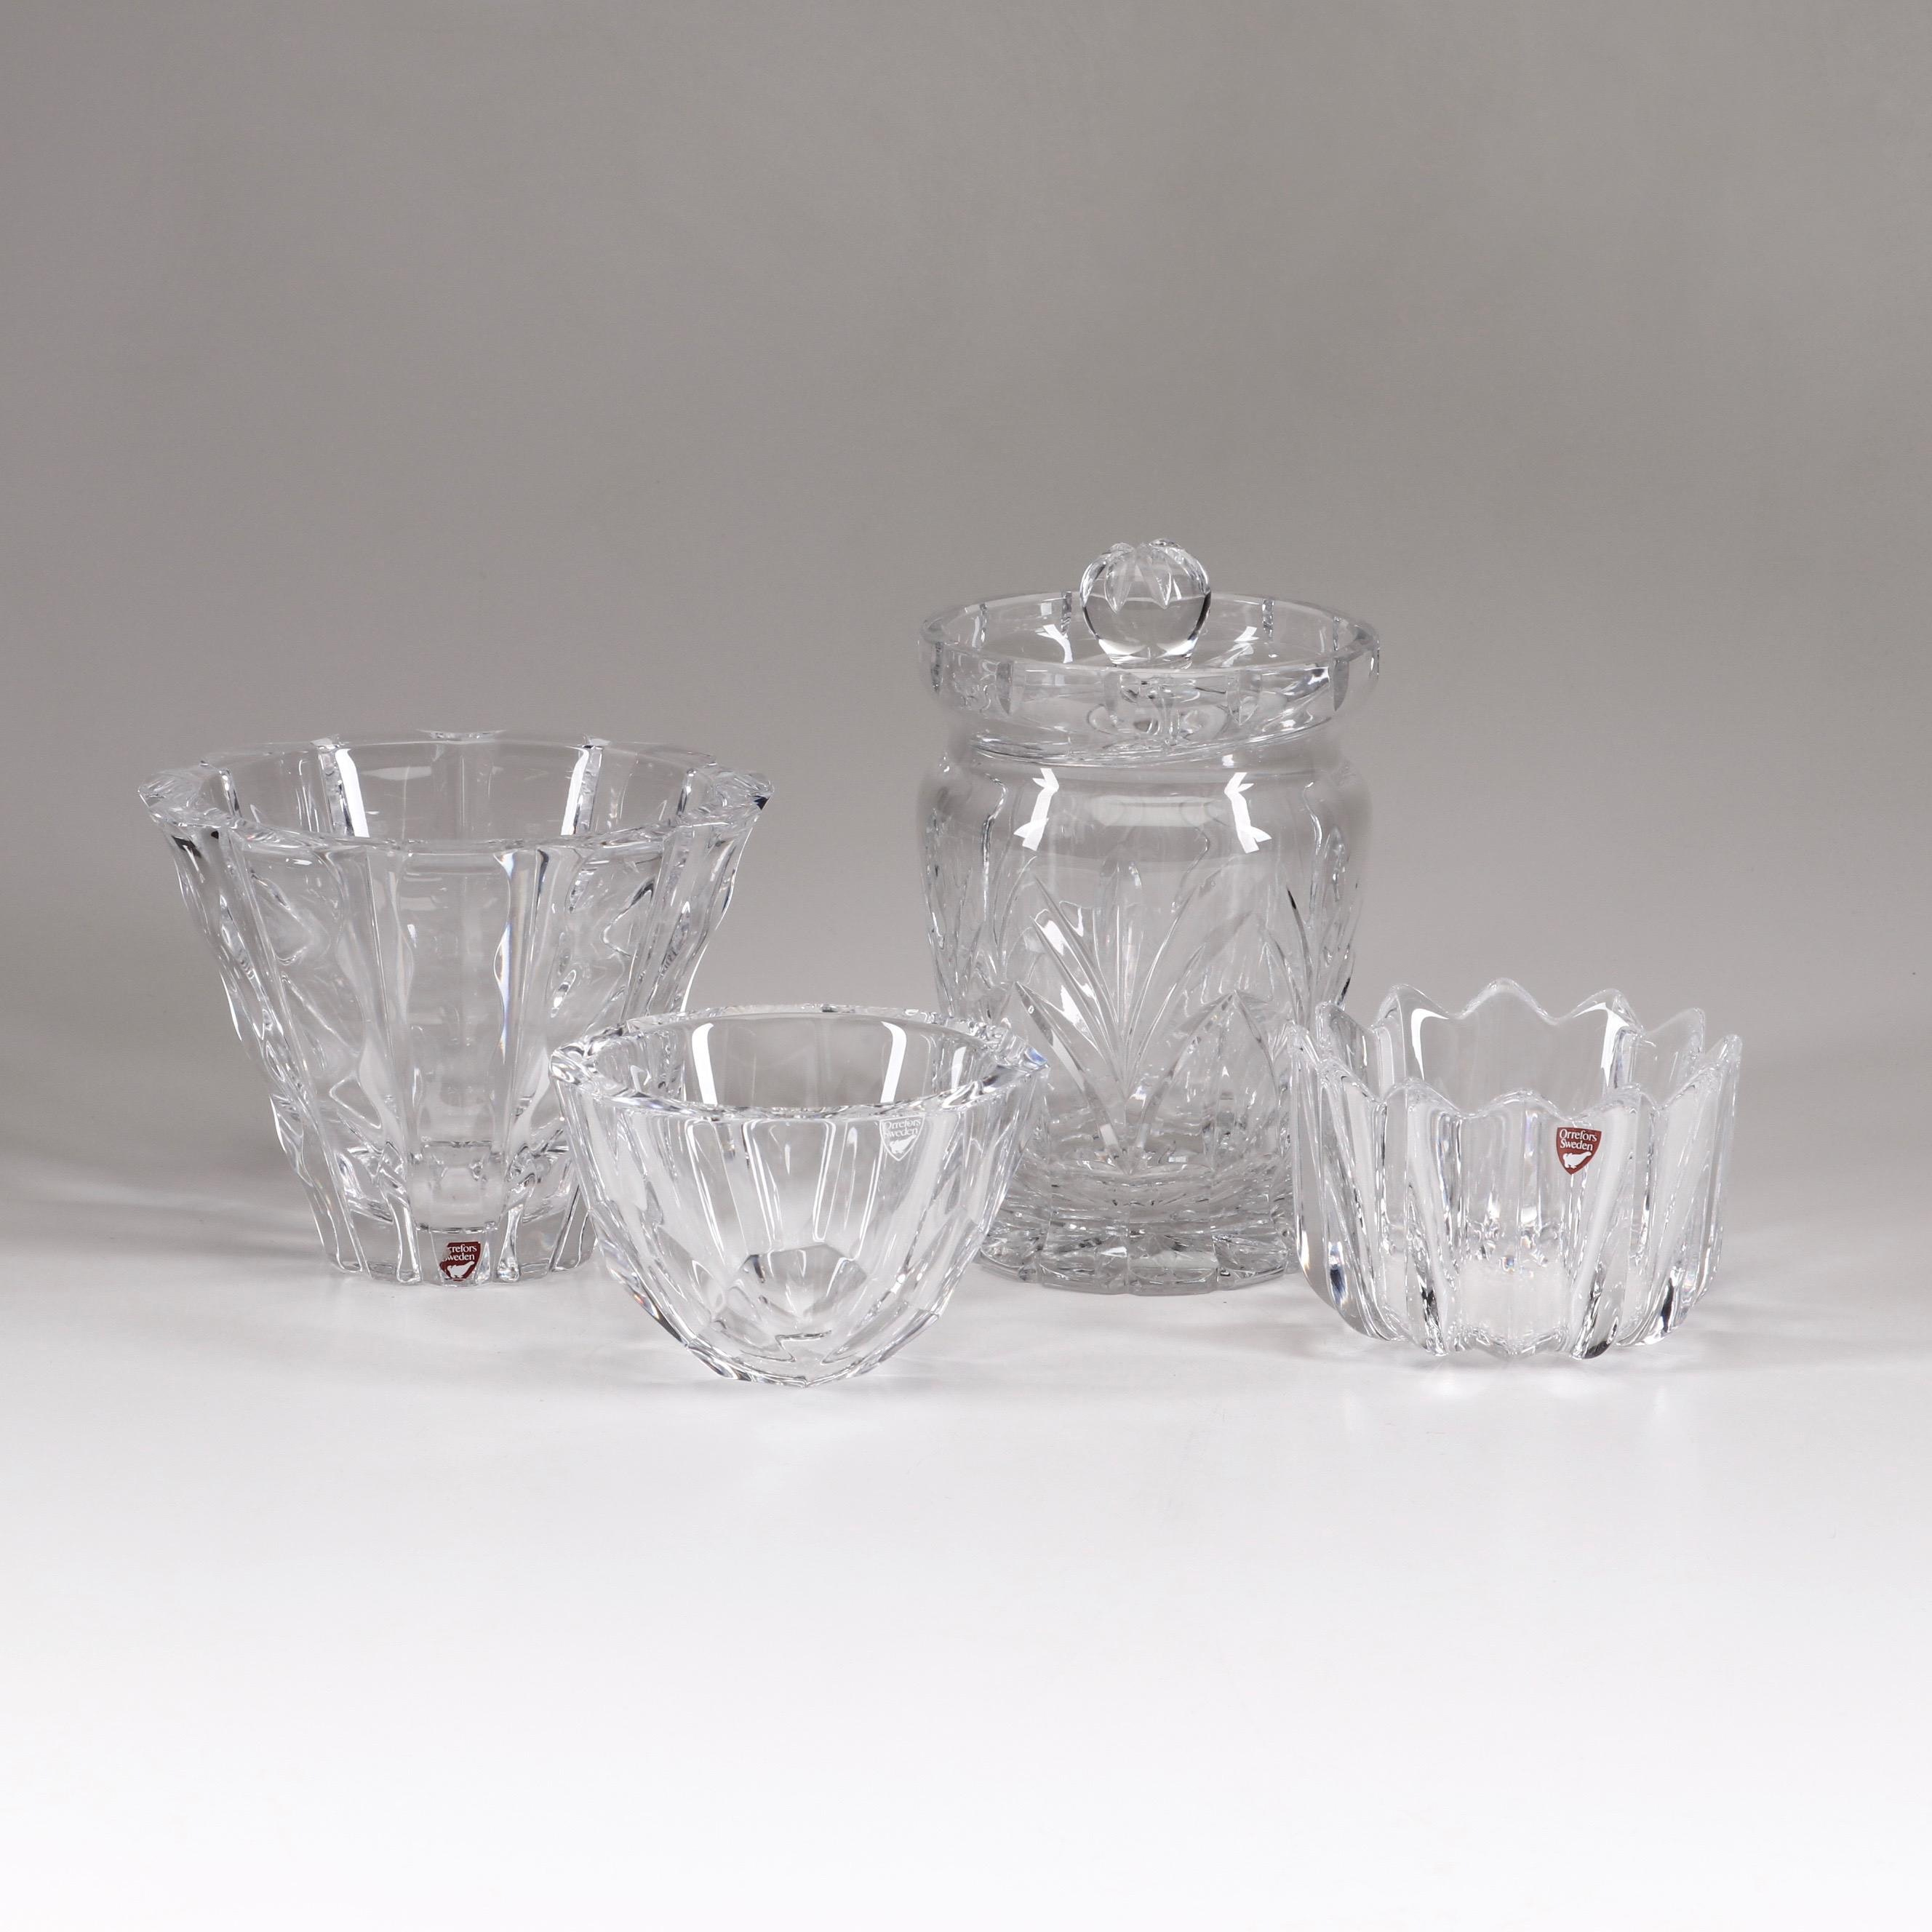 Orrefors and Marquis by Waterford Crystal Glass Bowls and Lidded Jar